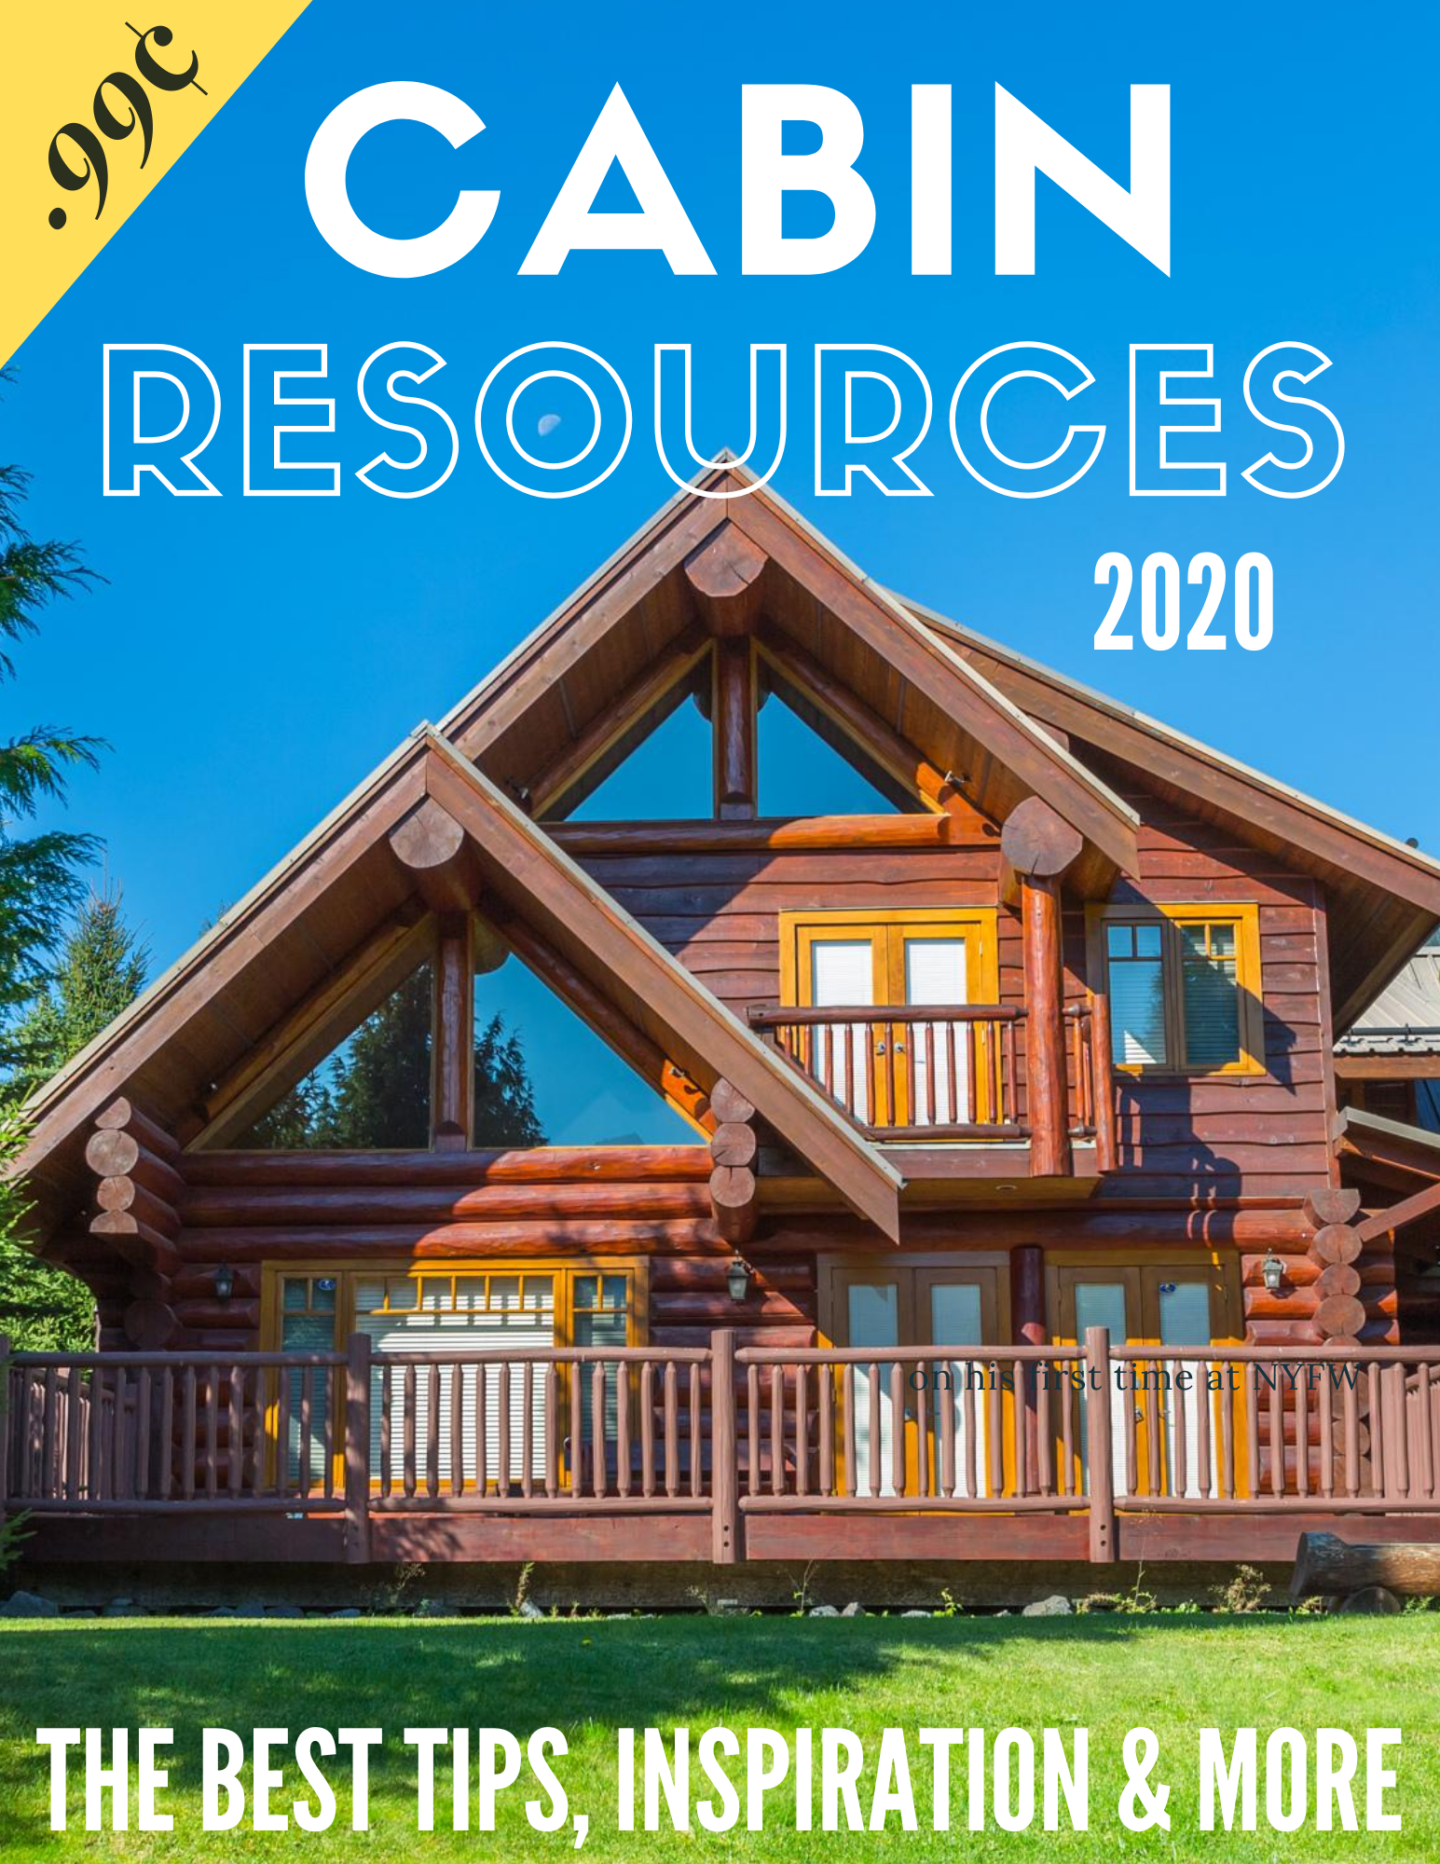 The 8 Best Log Cabin Kits Prices On The Market Right Now 2020 Log Cabin Kits Prices Small Log Cabin Cabin Kits